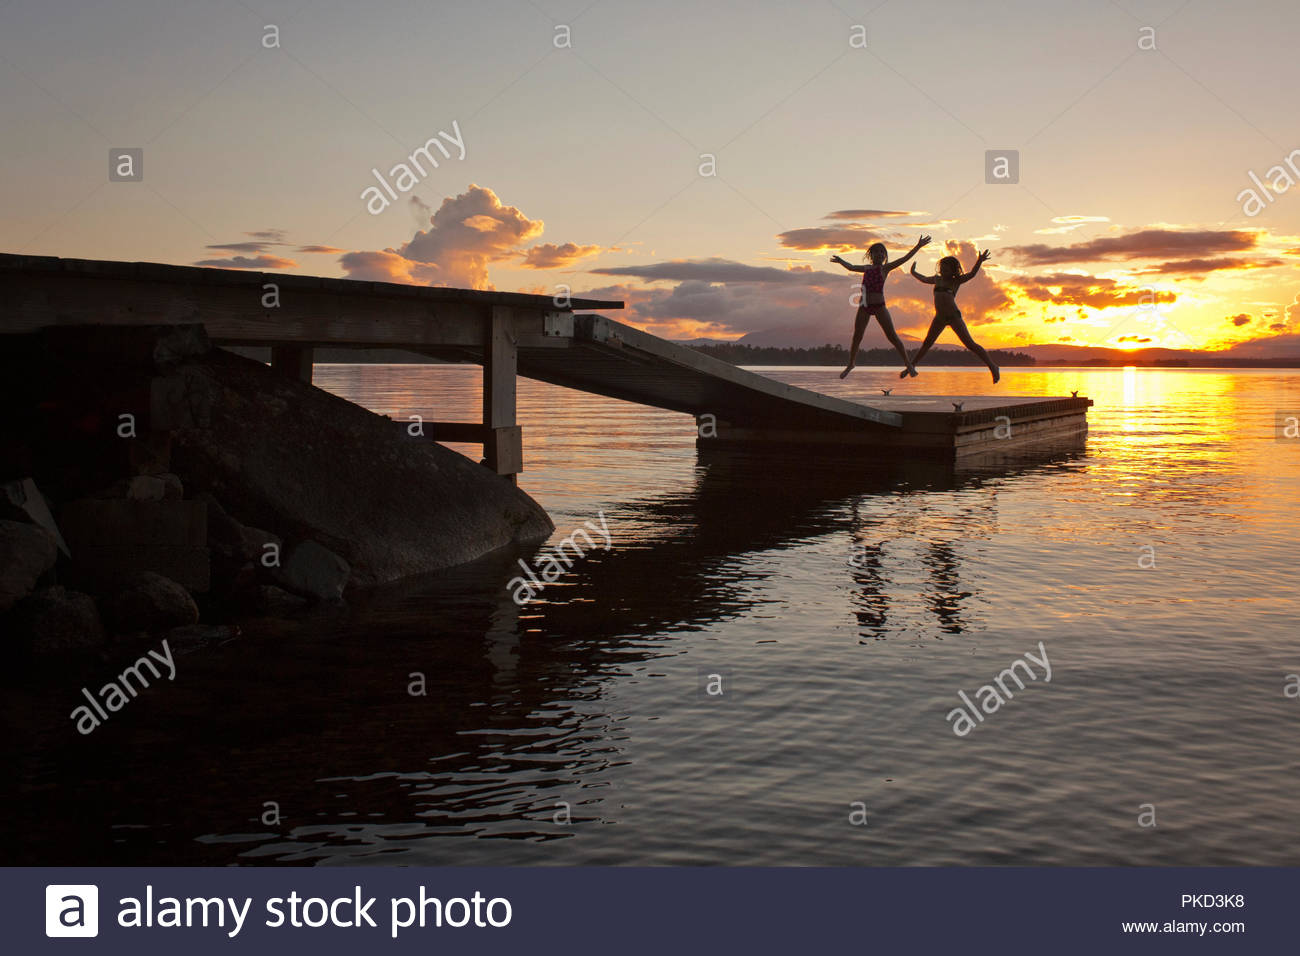 two silhouetted subjects jumping in sync on lake dock at sunset - Stock Image